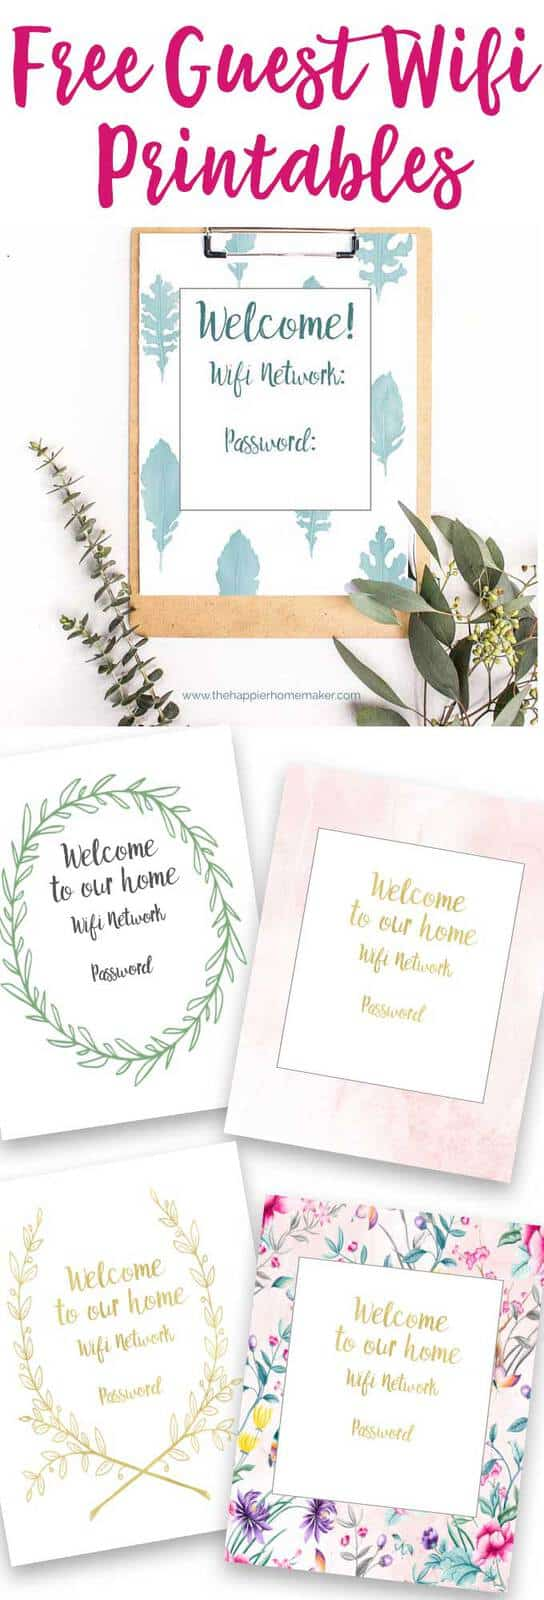 Free Guest Wifi Printables - Welcome Your Guests in Style